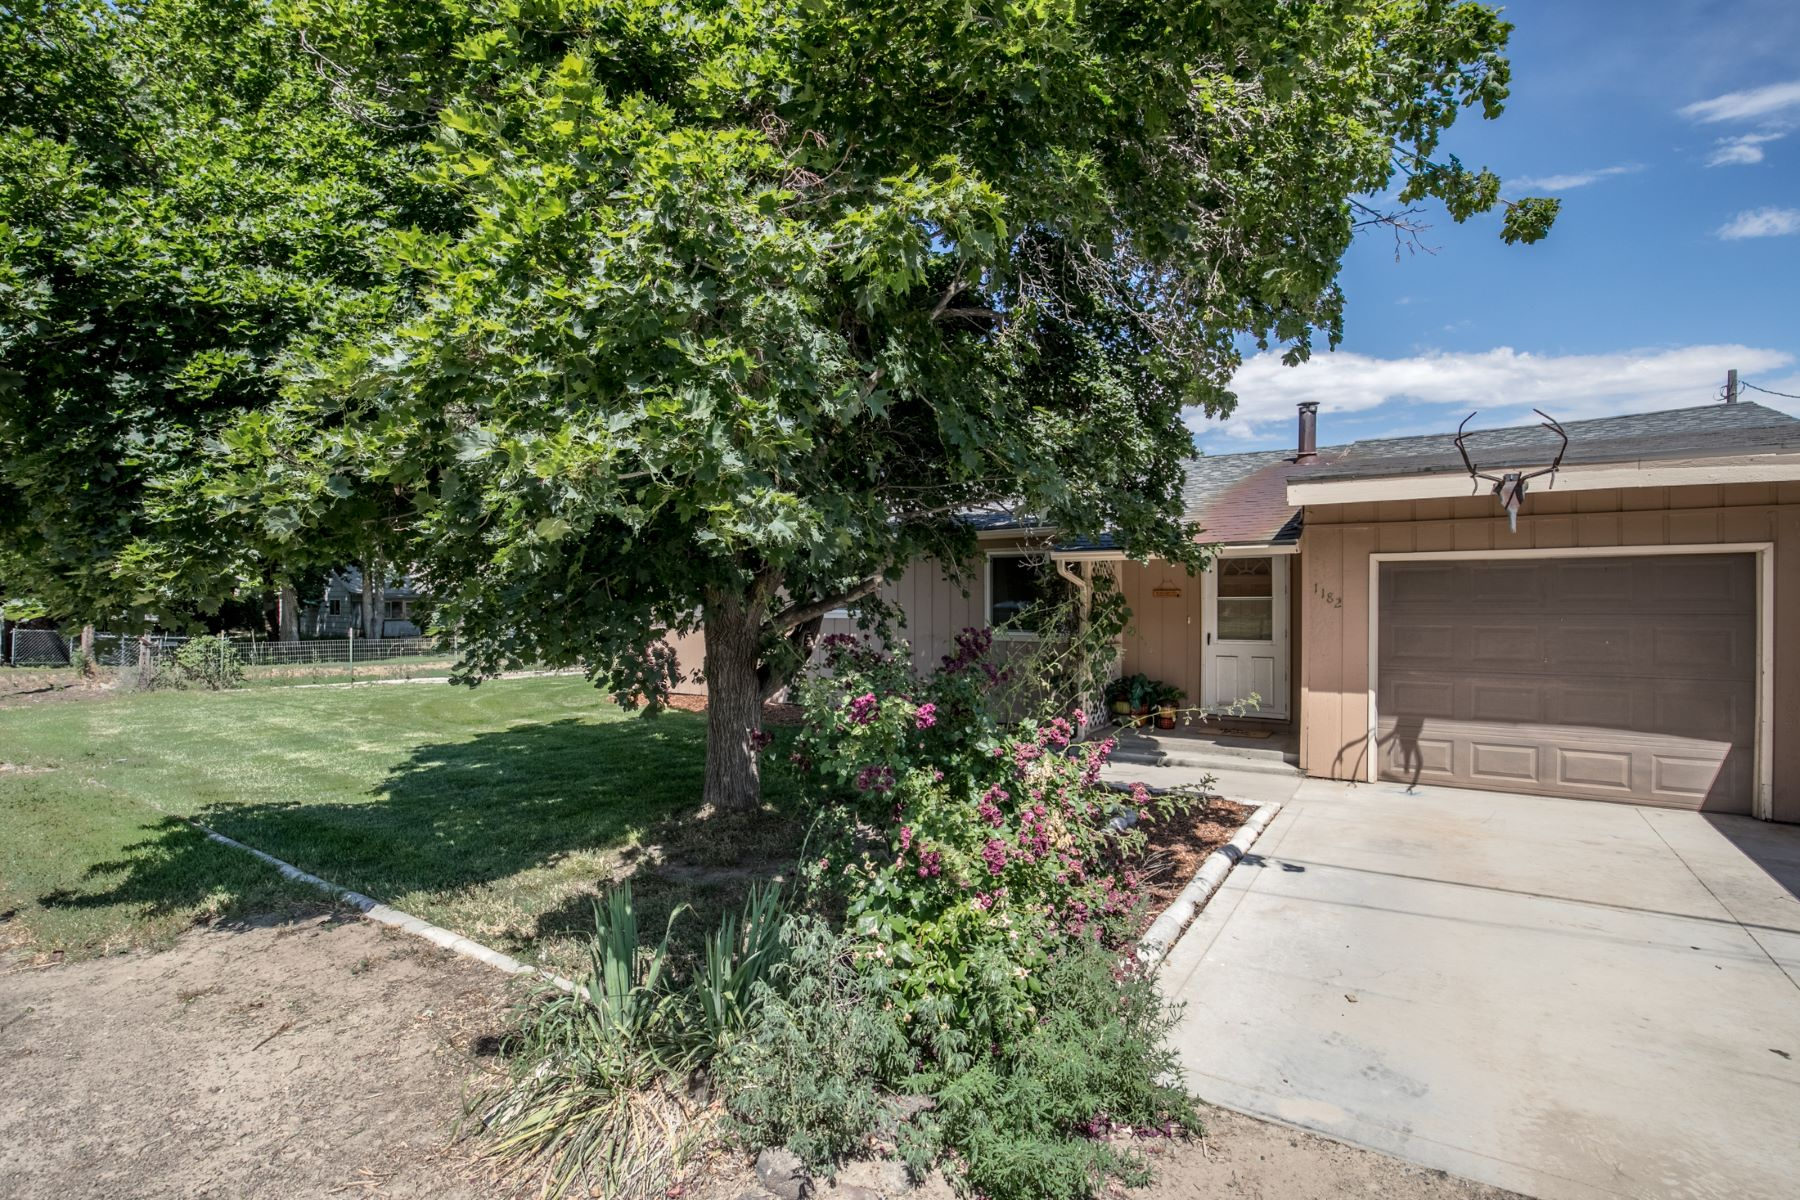 Single Family Homes for Active at 1182 10th E, Mountain Home 1182 S 10th E Mountain Home, Idaho 83647 United States